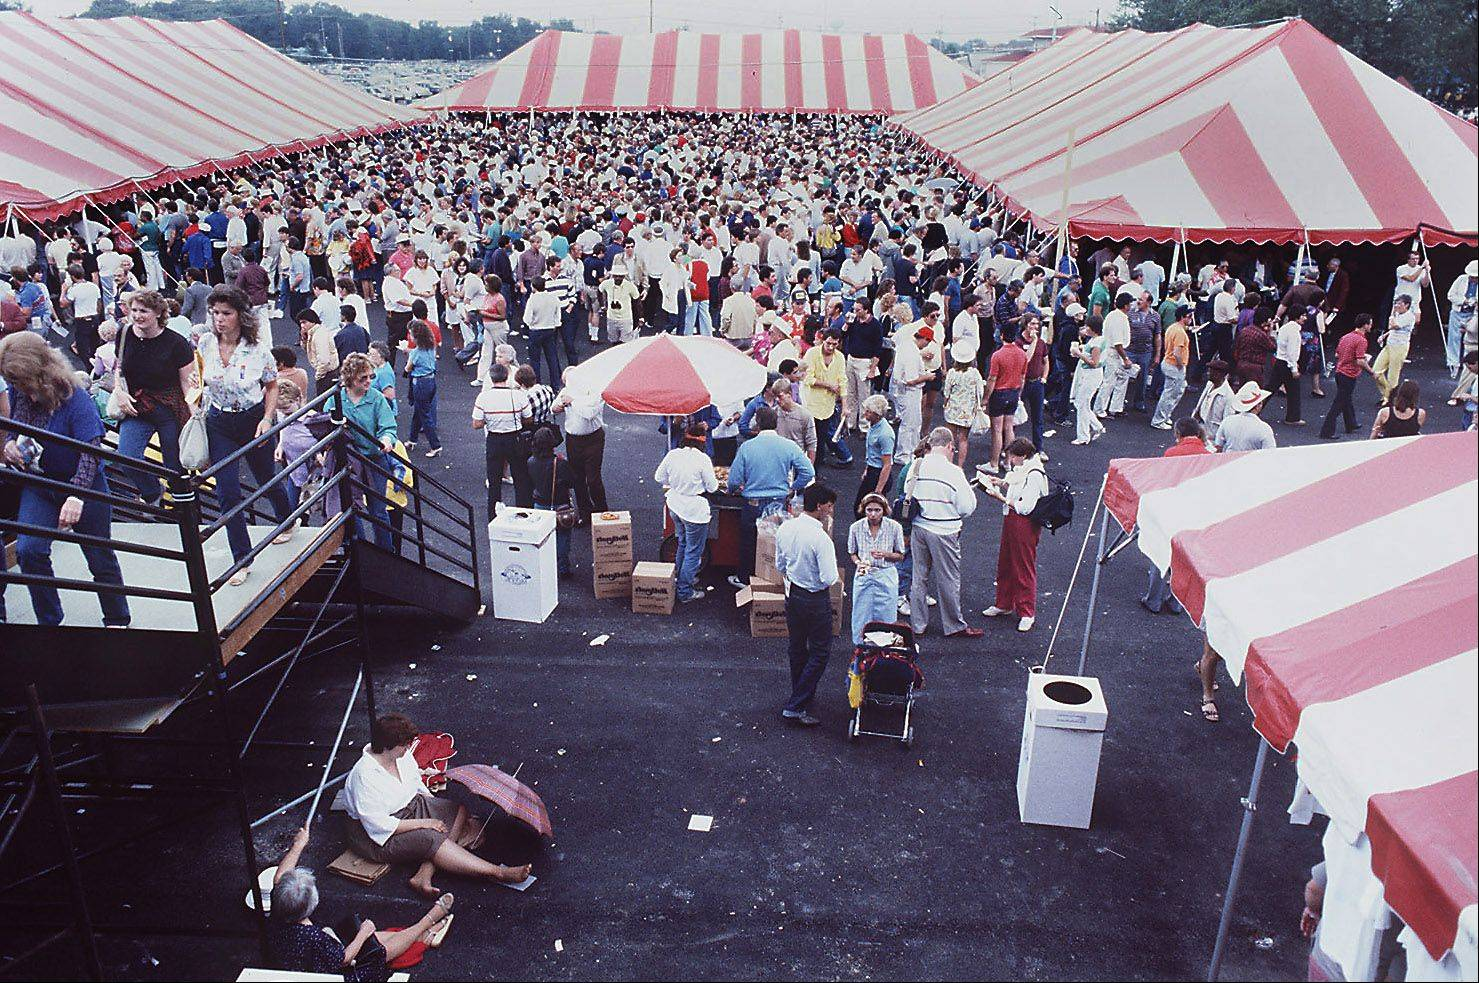 With tents and bleachers as the only structures 35,000 horse racing fans attended the Miracle Million at Arlington Park just 25 days after a fire burned the facility to the ground.